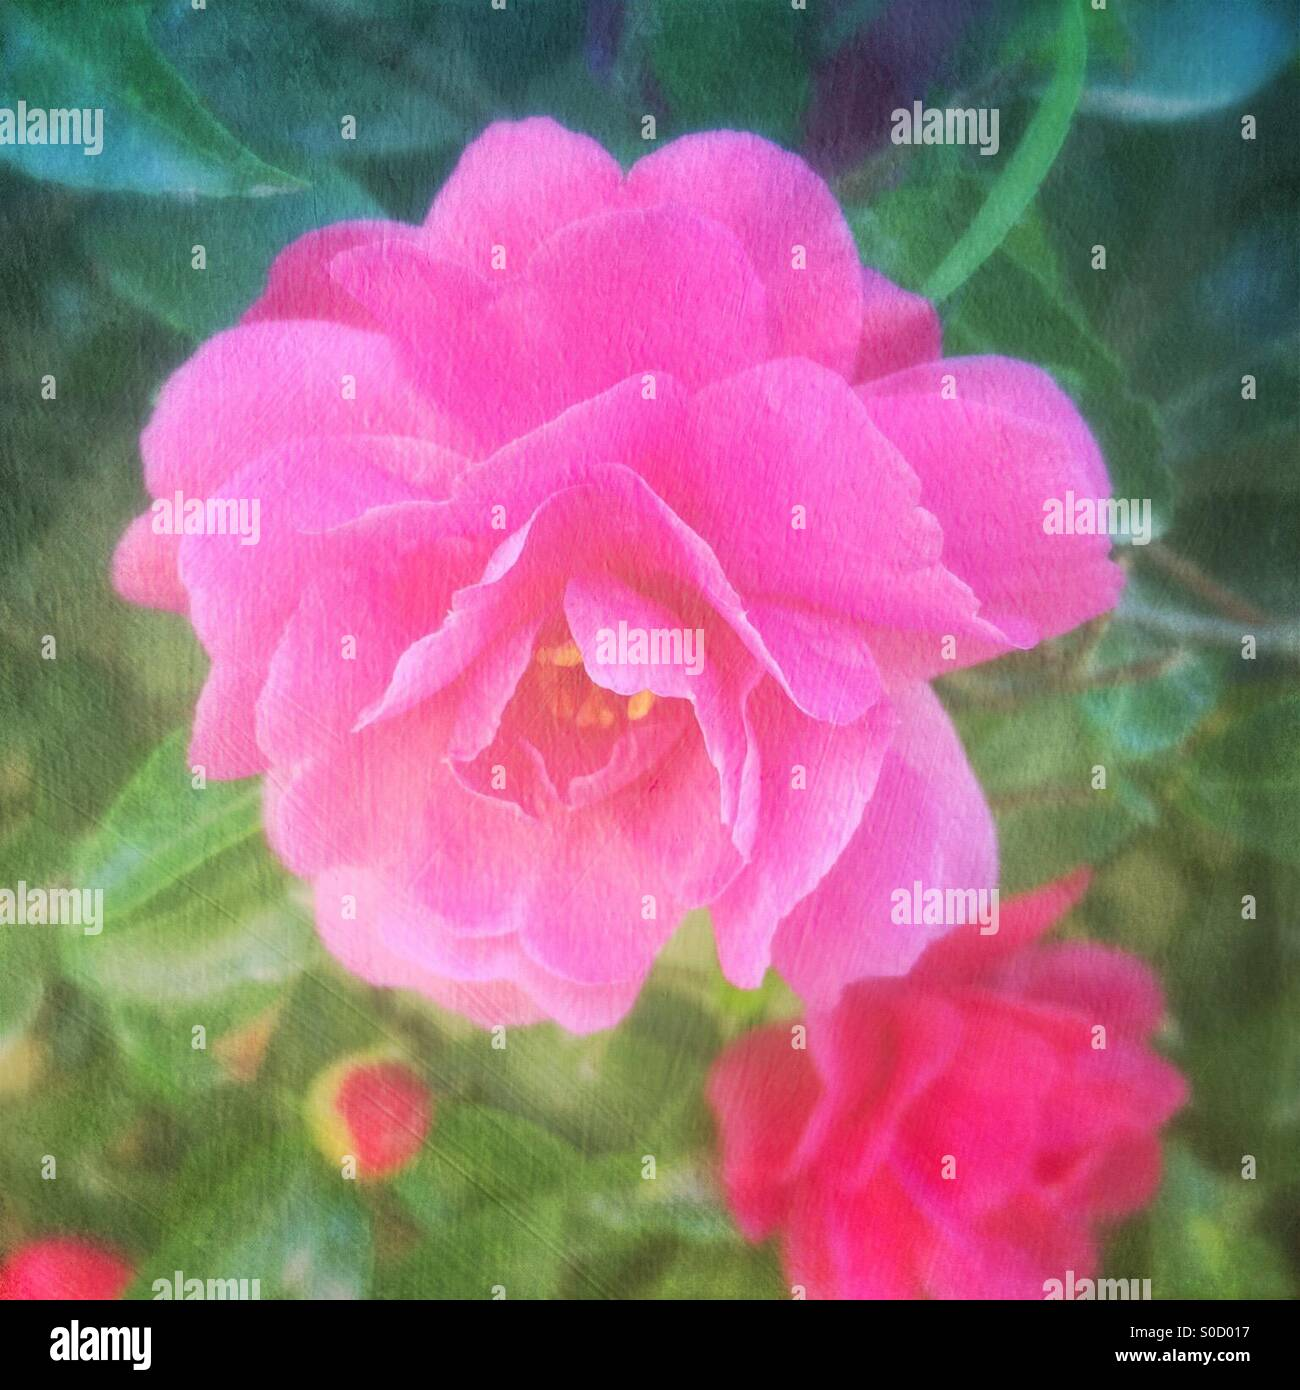 Pretty, pink camellia flower in Spring, with vintage painterly texture overlay. - Stock Image